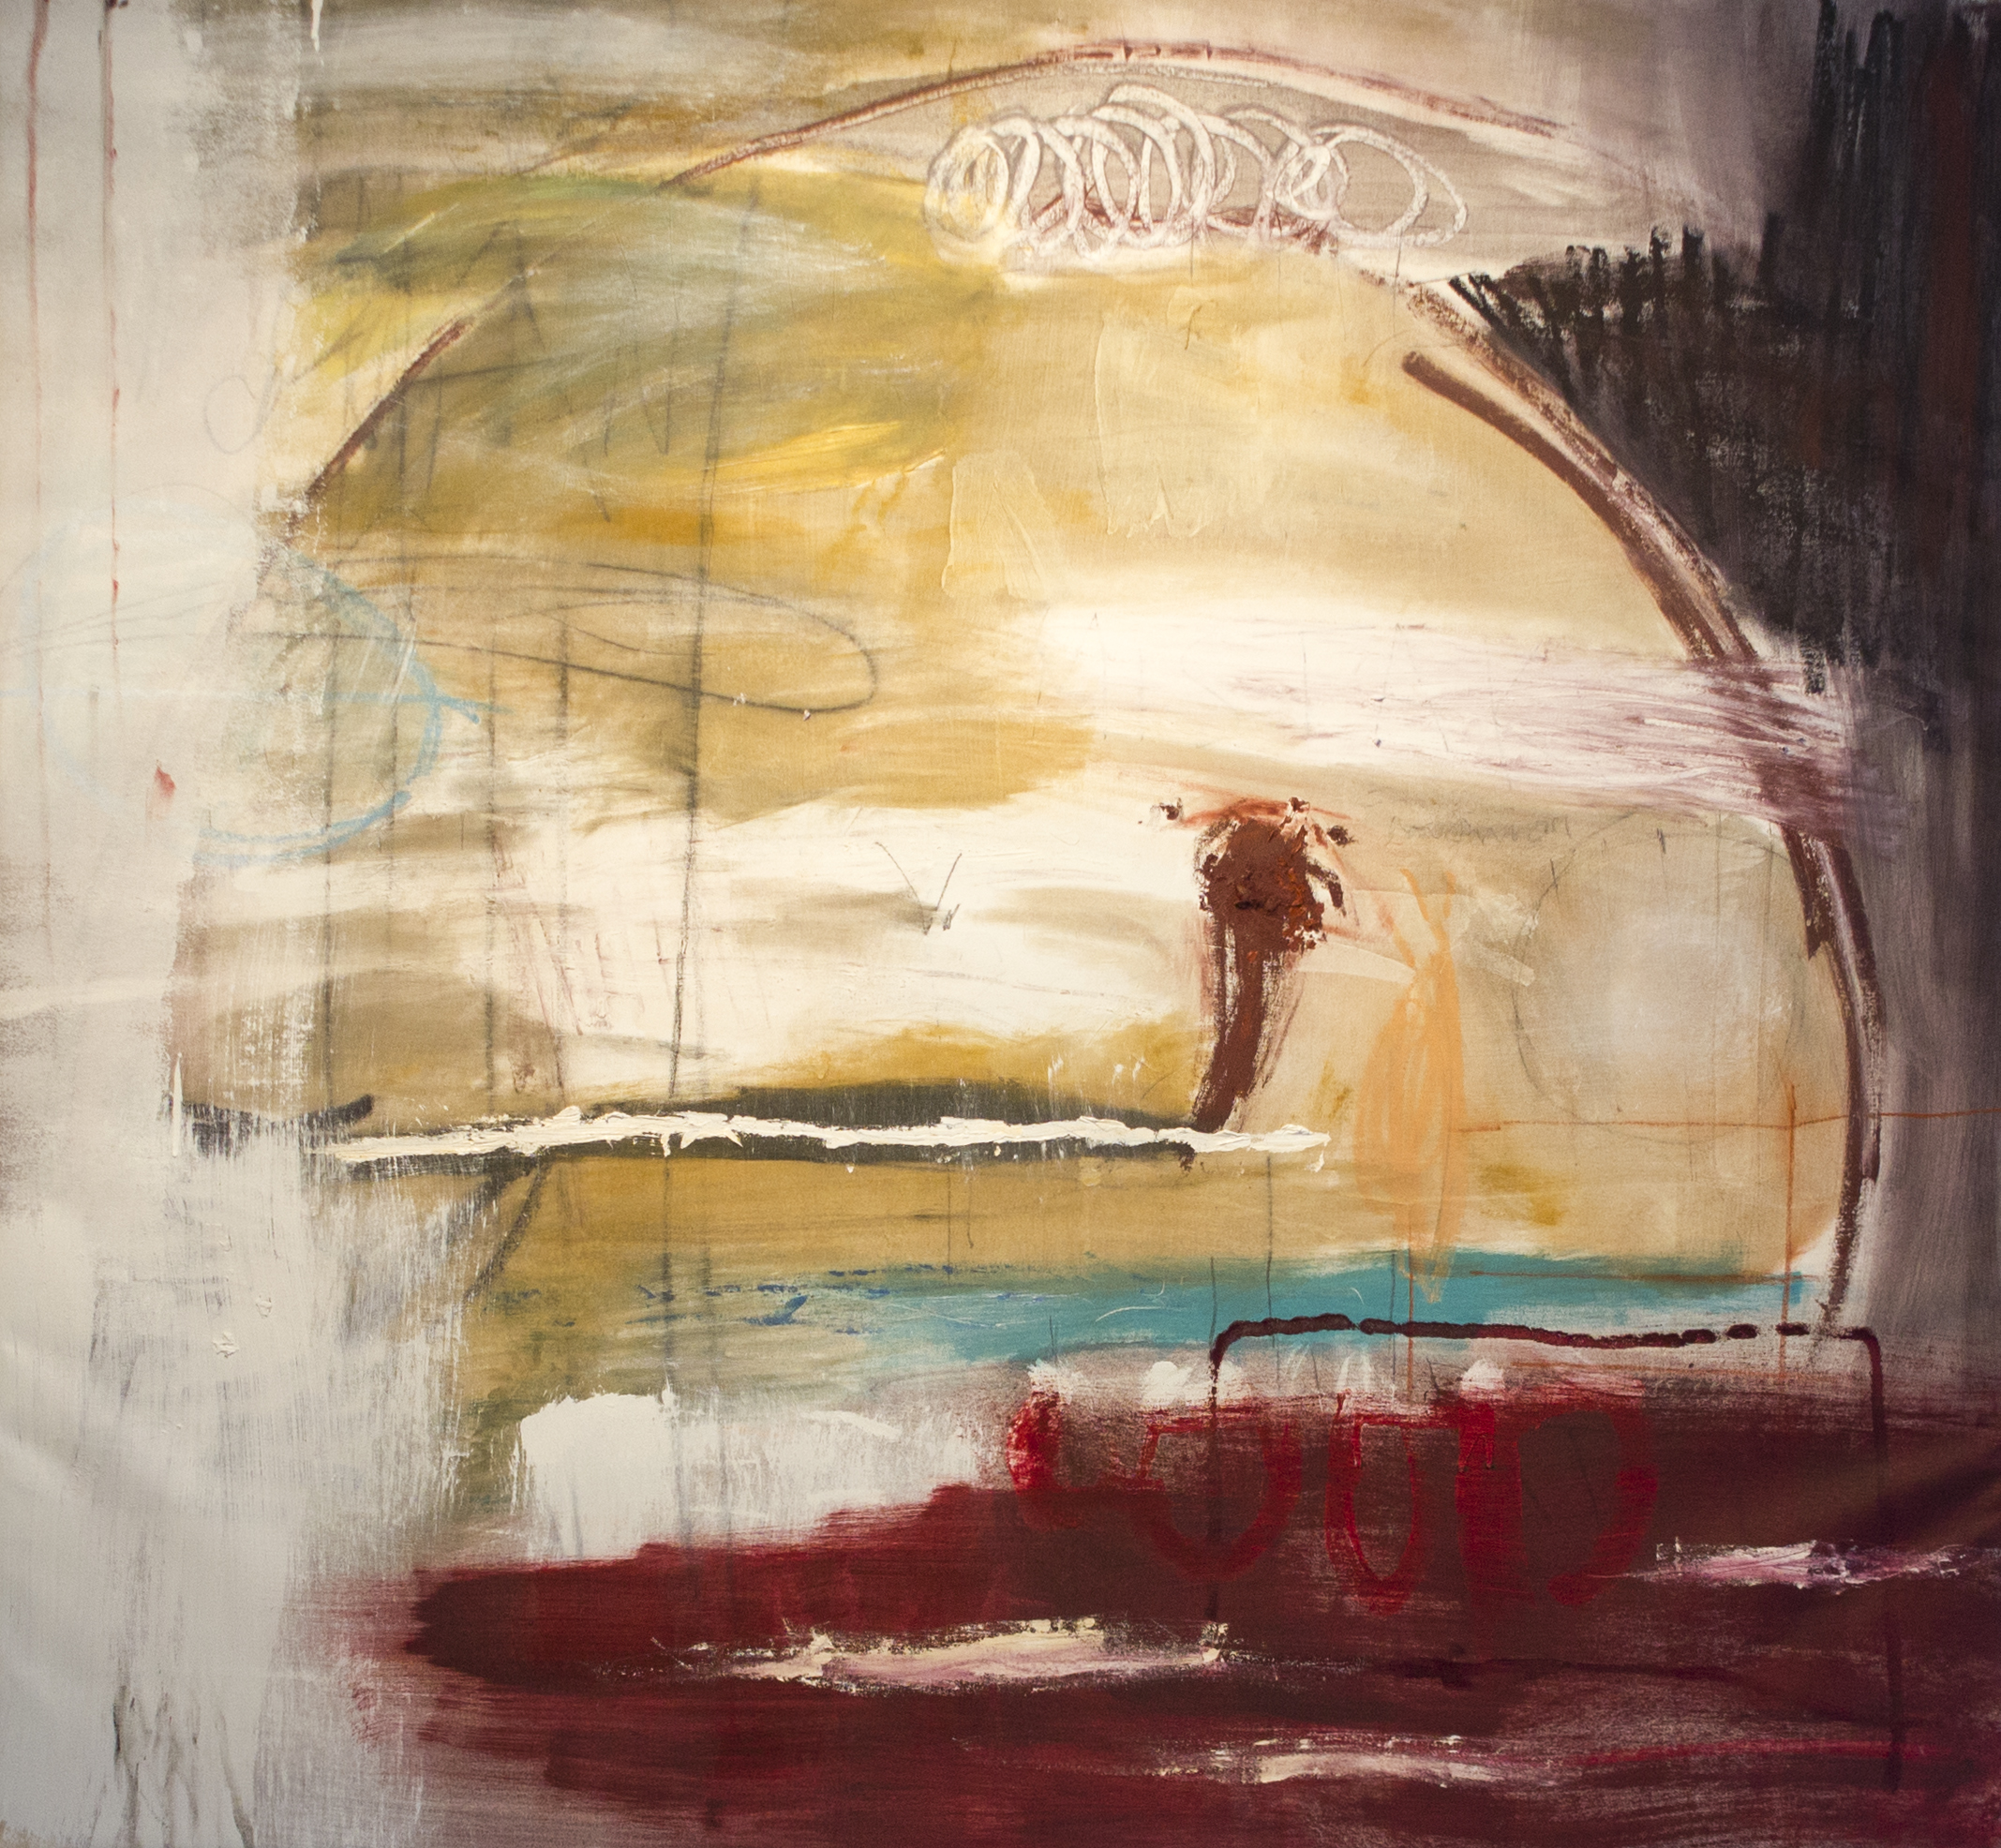 Meursault and Mercutio at Verona   , 2016   50 x 54 Inches  Oil, Oil Stick, Acrylic, Colored Pencil, Charcoal, Pastel and Graphite on Canvas